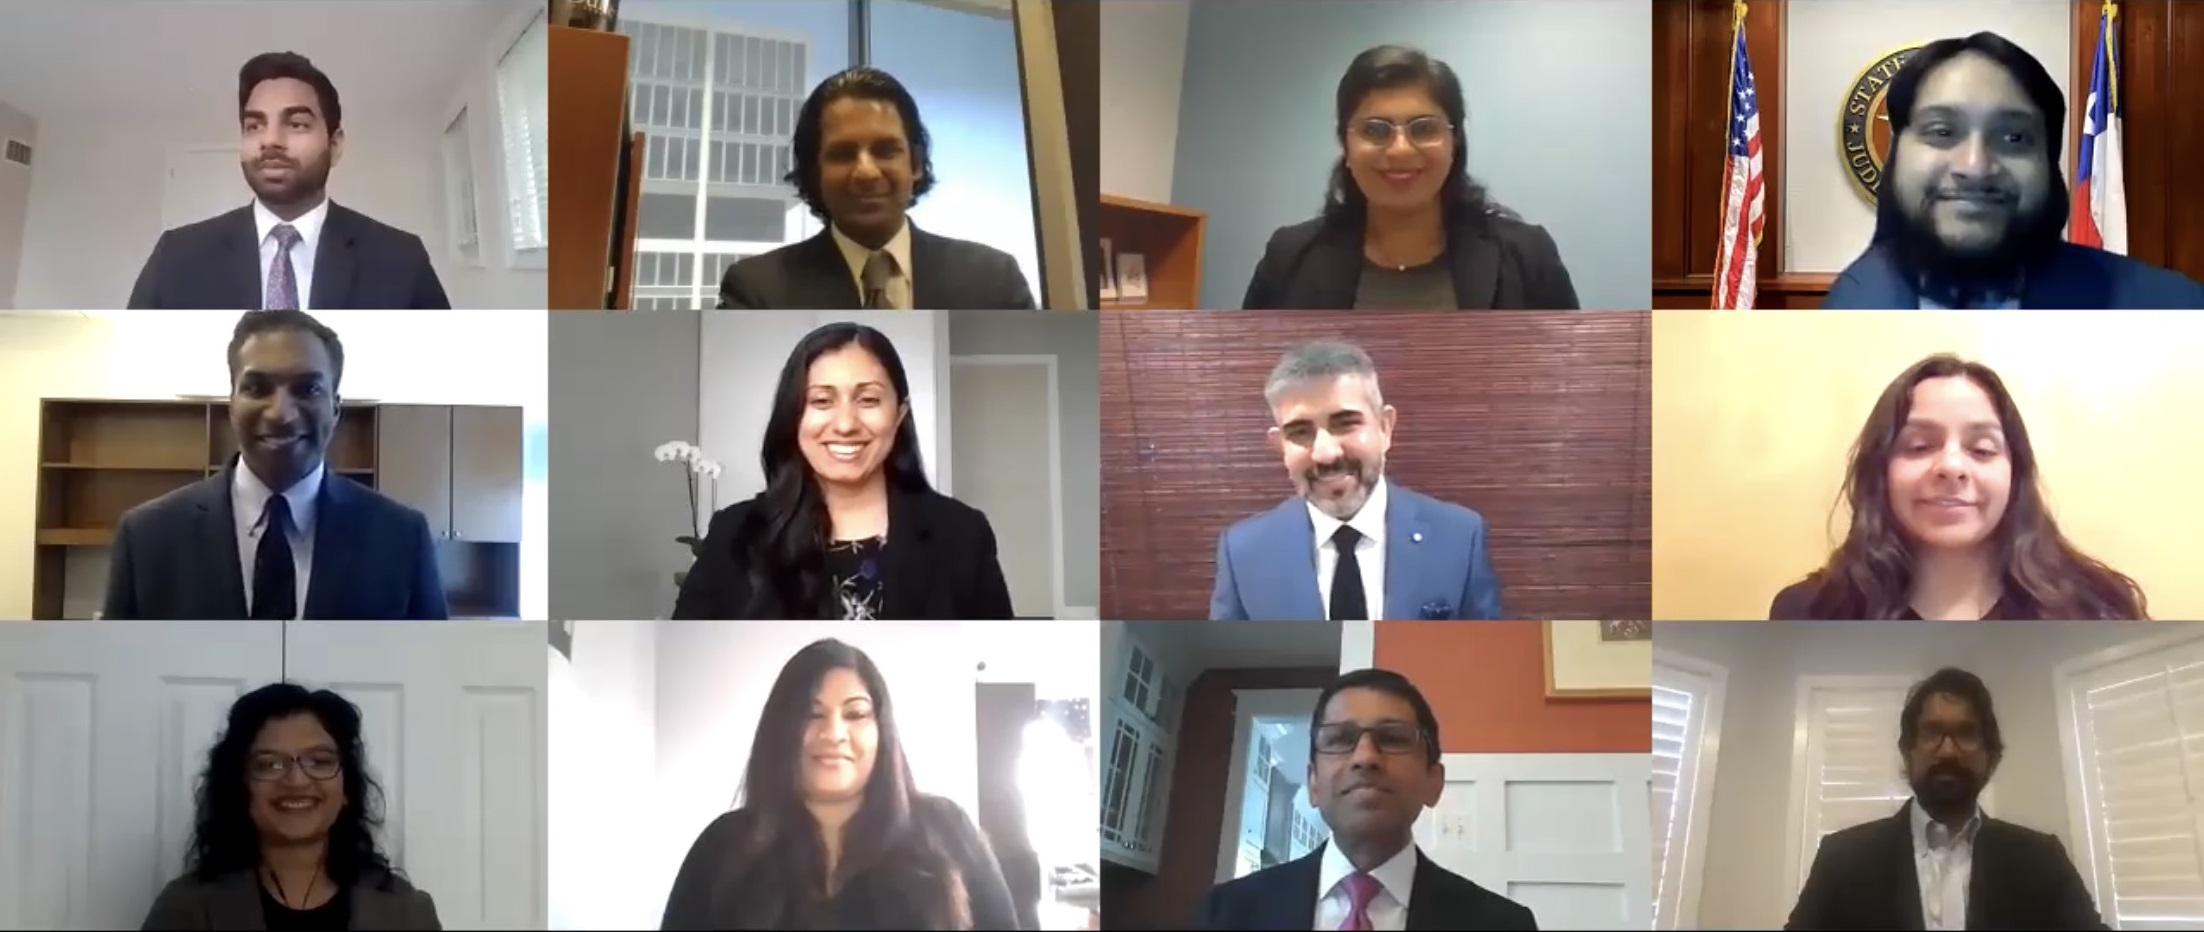 *The 2020-2021 SABA Executive Committee was sworn in on June 23, 2020 by Chief Judge Sri Srinivasan of the U.S. Court of Appeals for the D.C. Circuit.